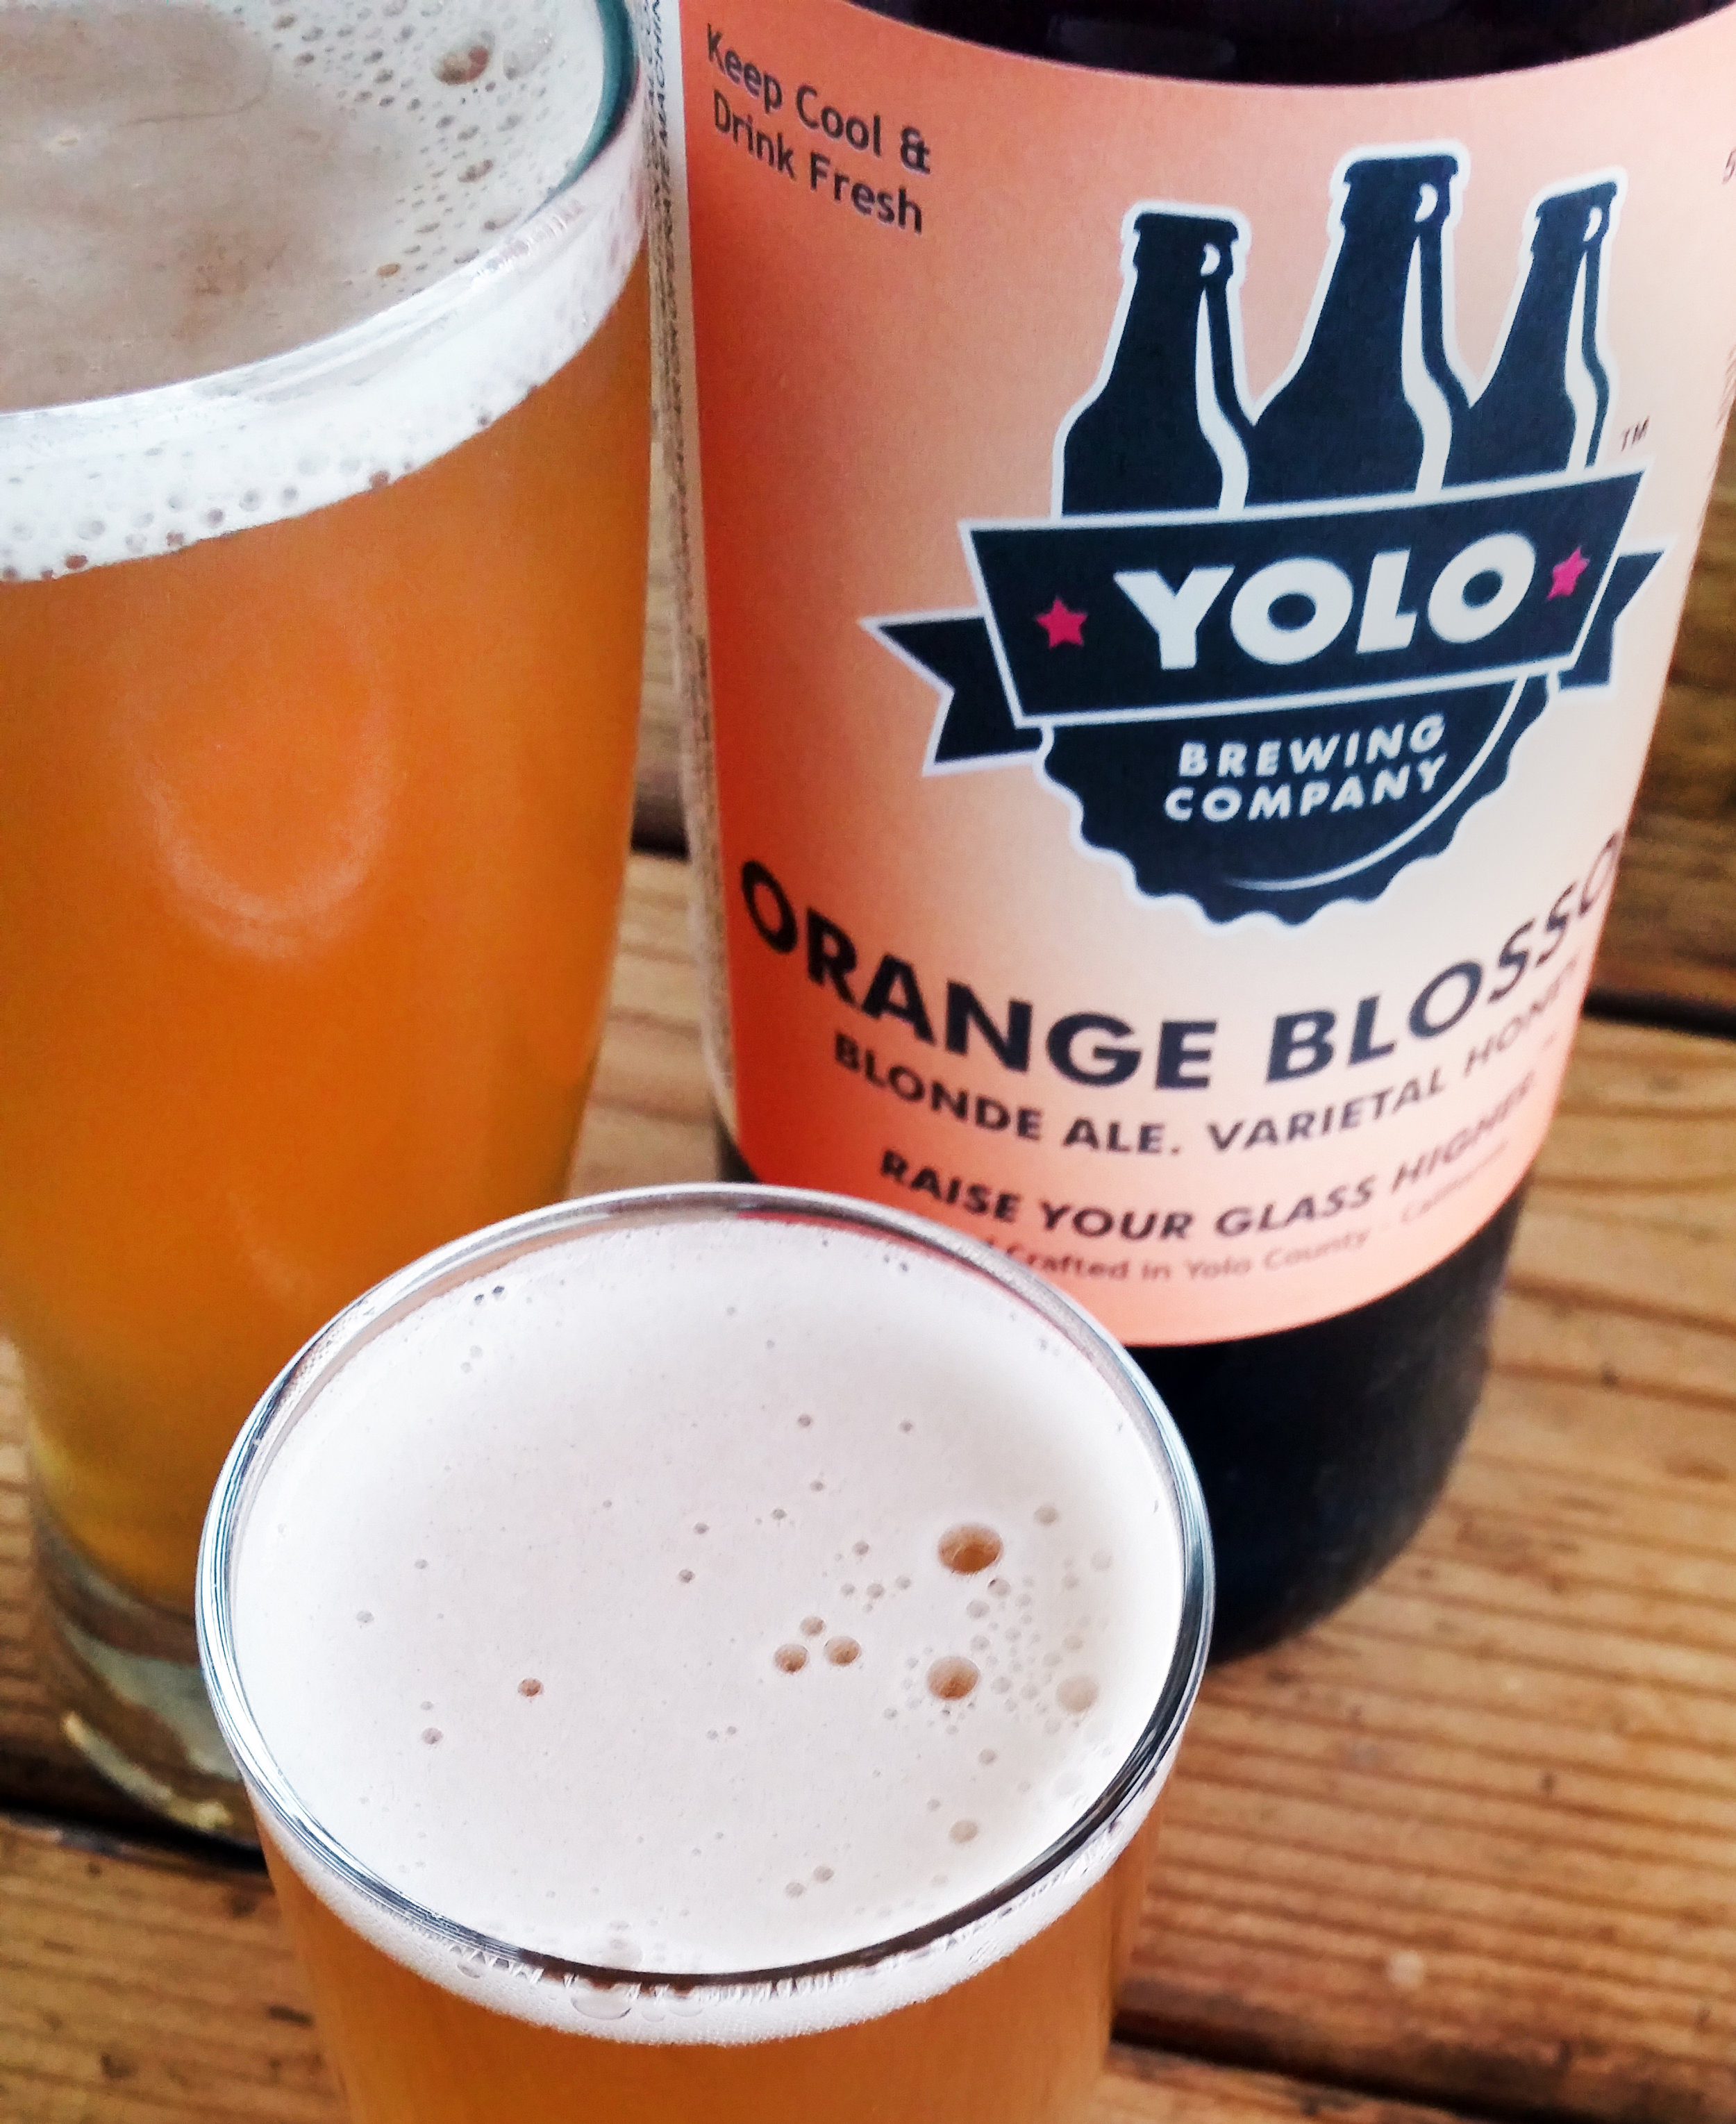 Orange Blossom Blonde